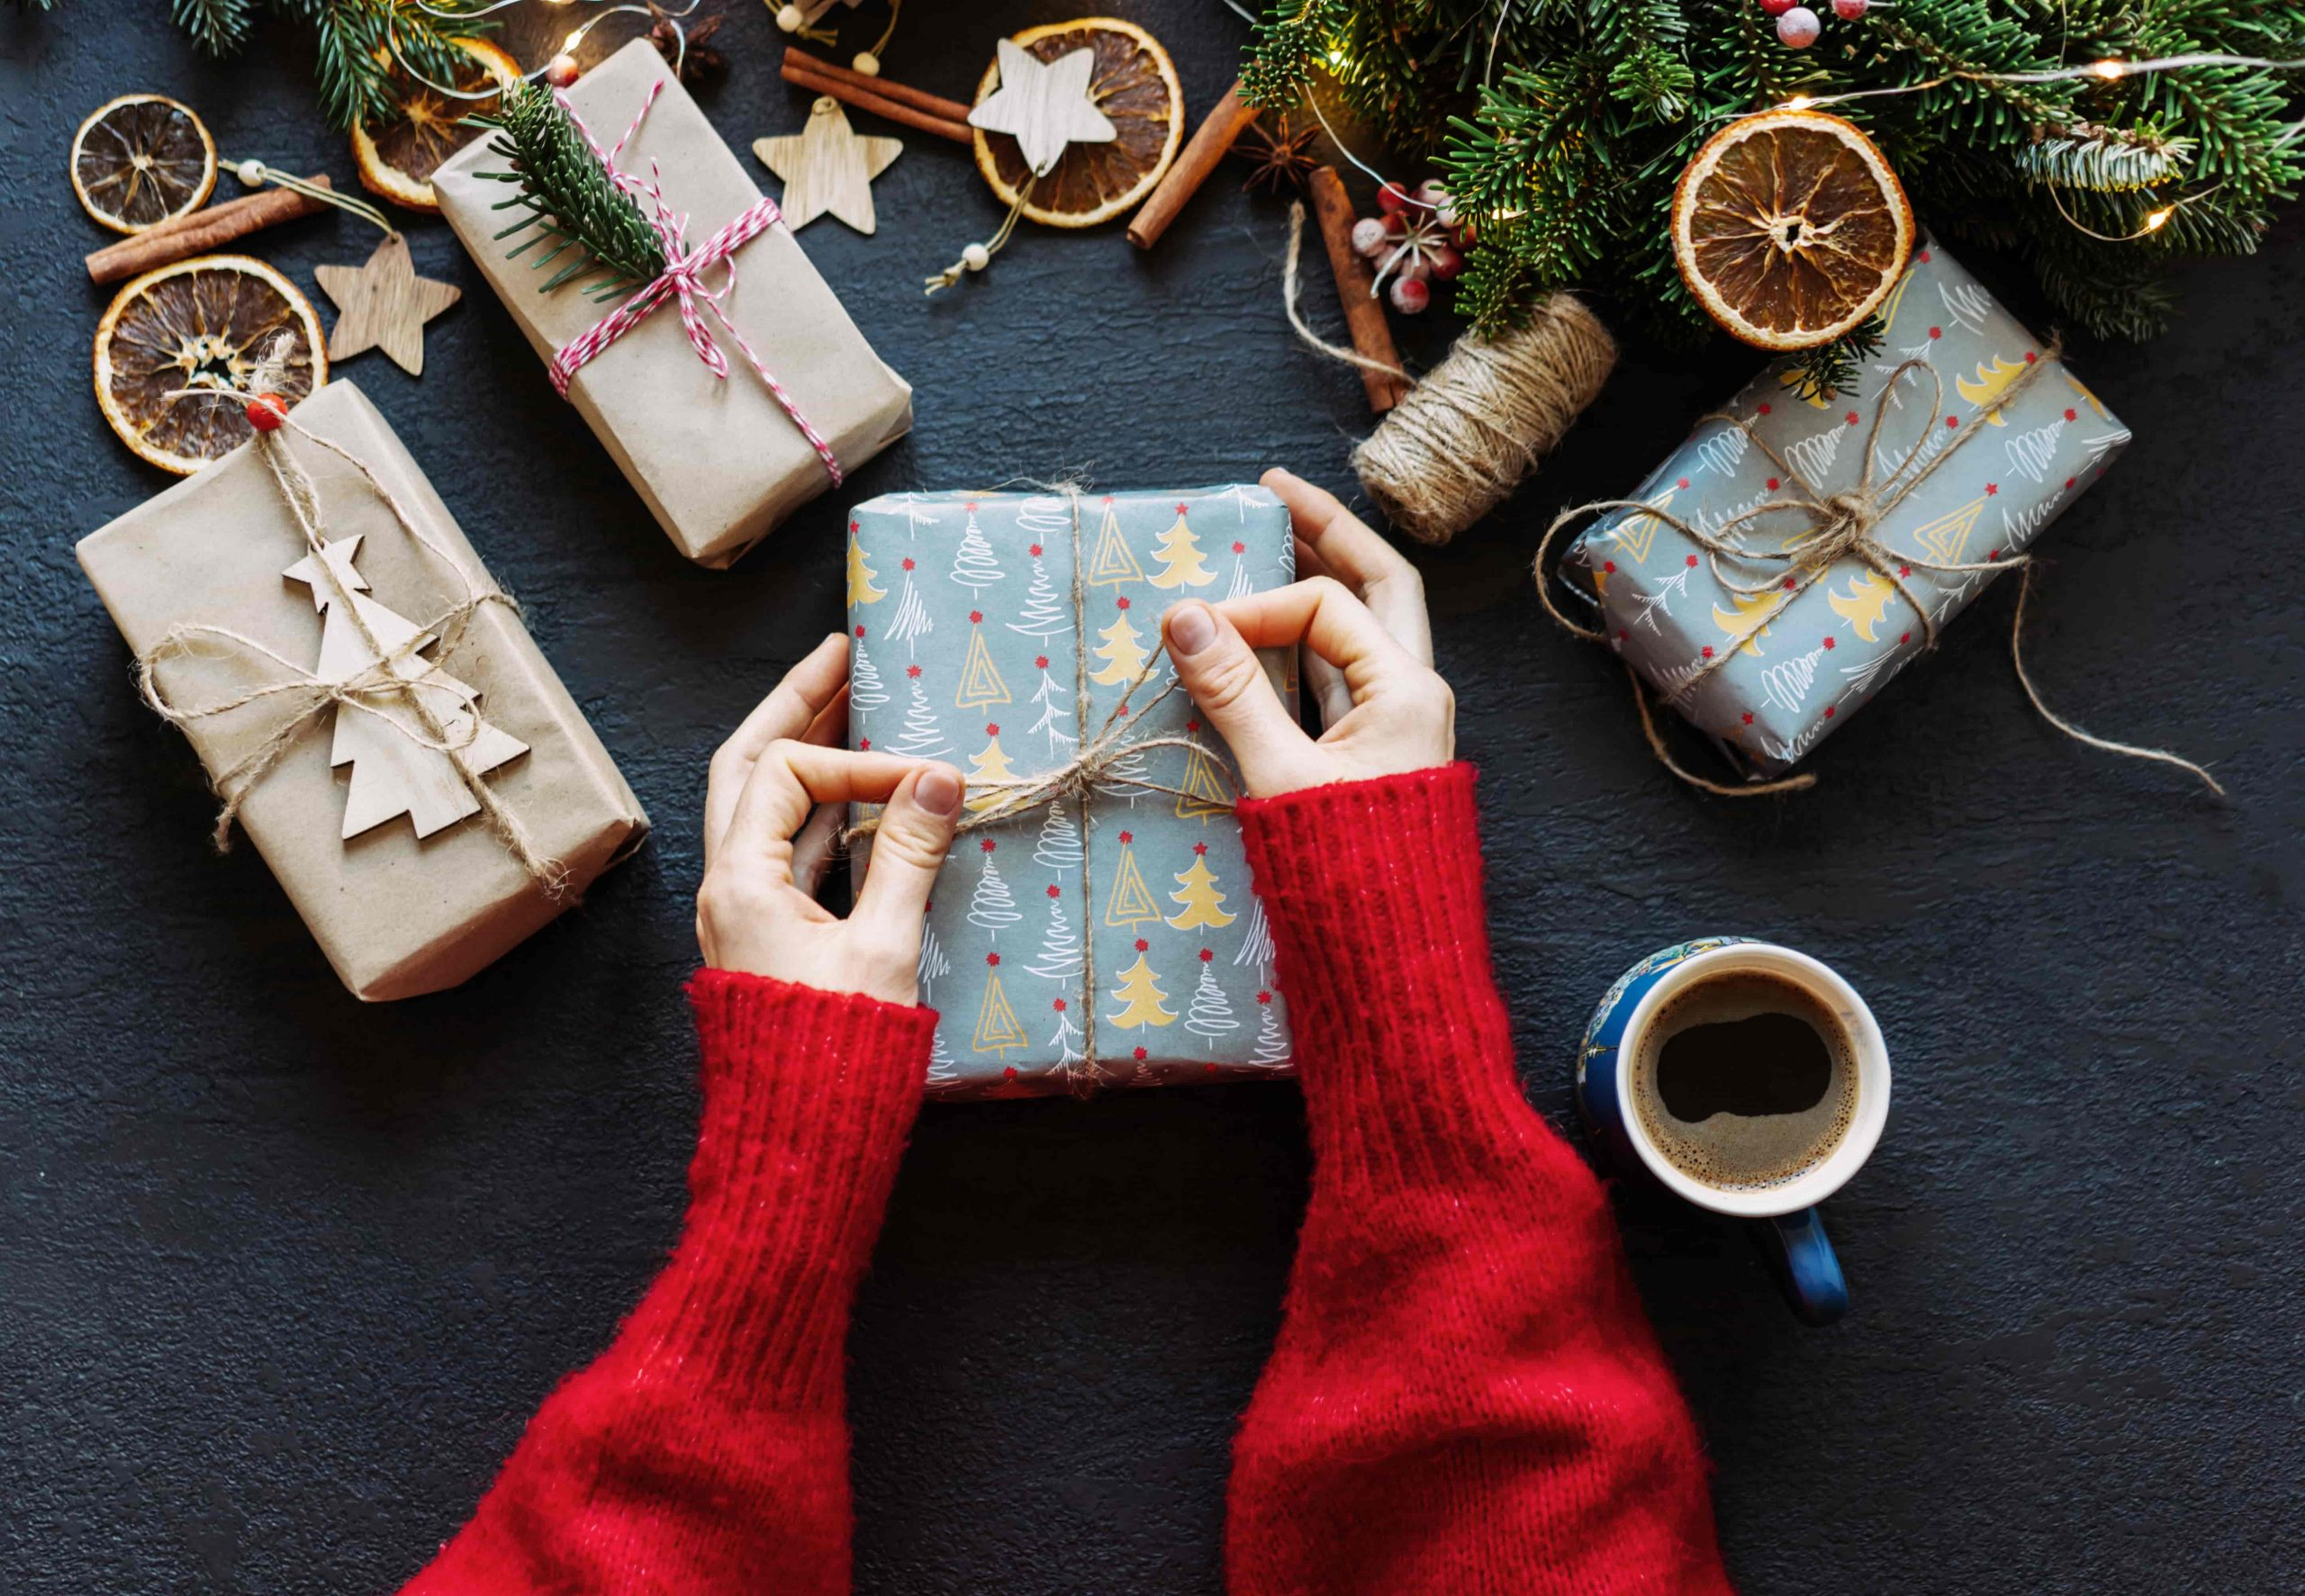 Female hands wrapping presents